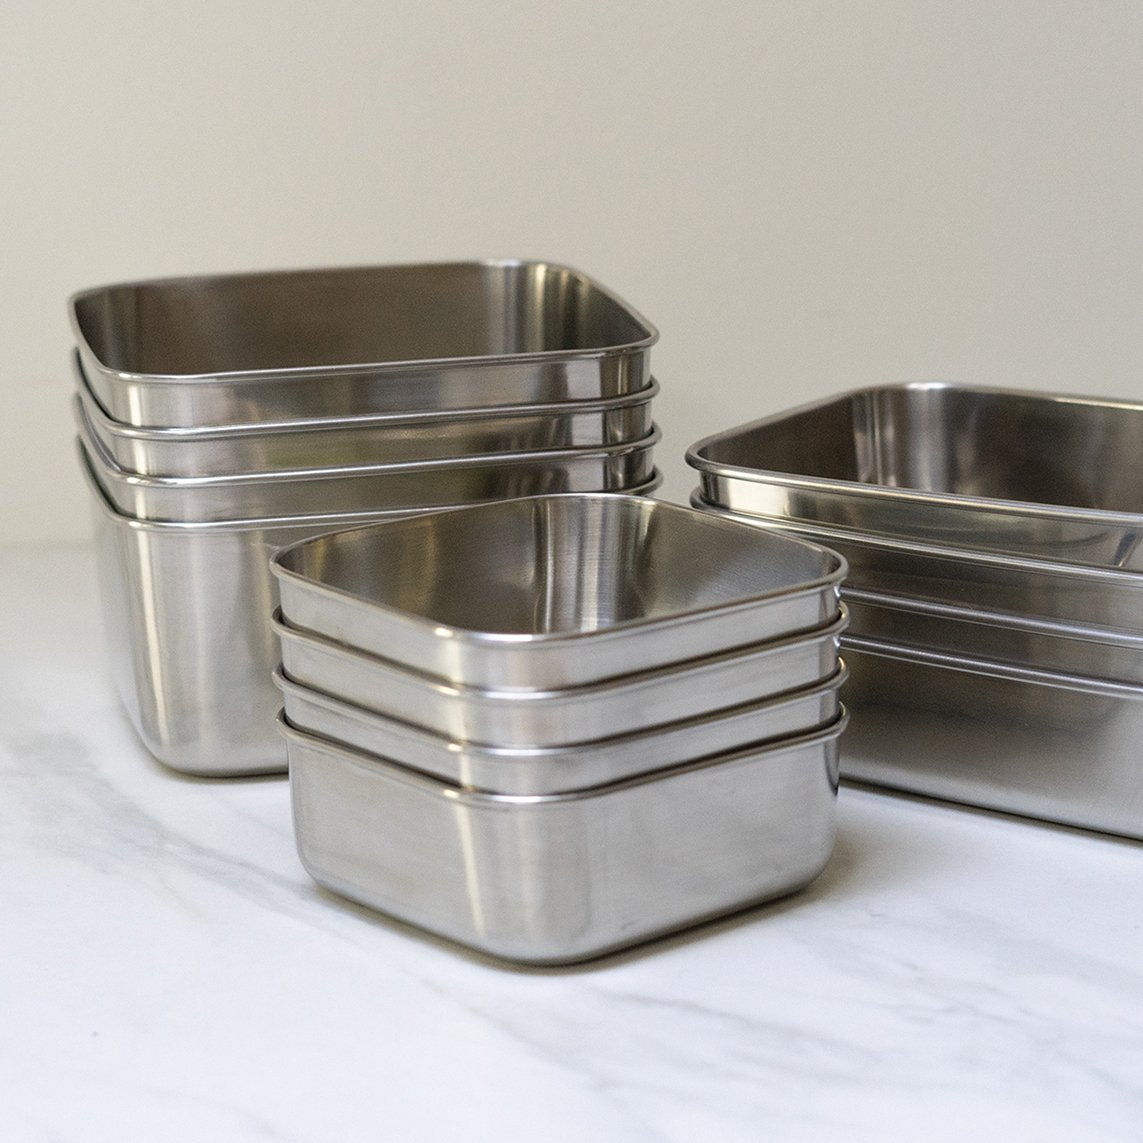 Divided Square Stainless Steel To-Go Containers